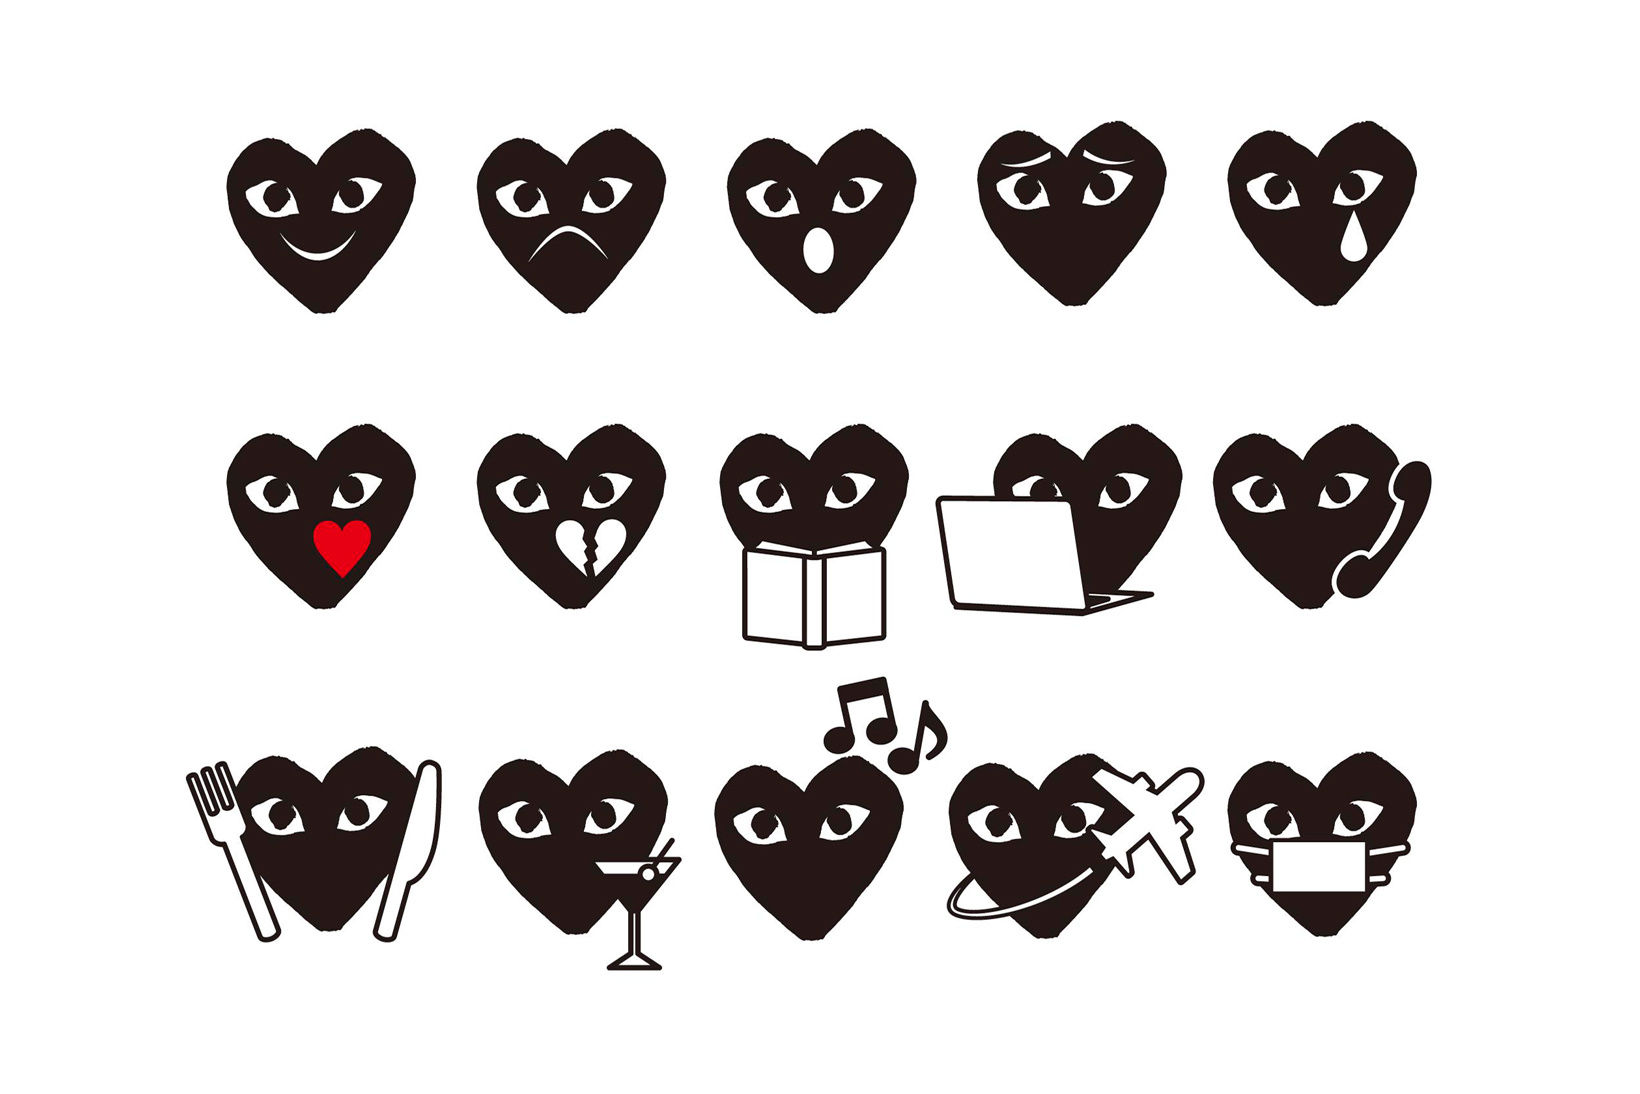 Comme des Garçons Emojis Pack - TRENDS periodical